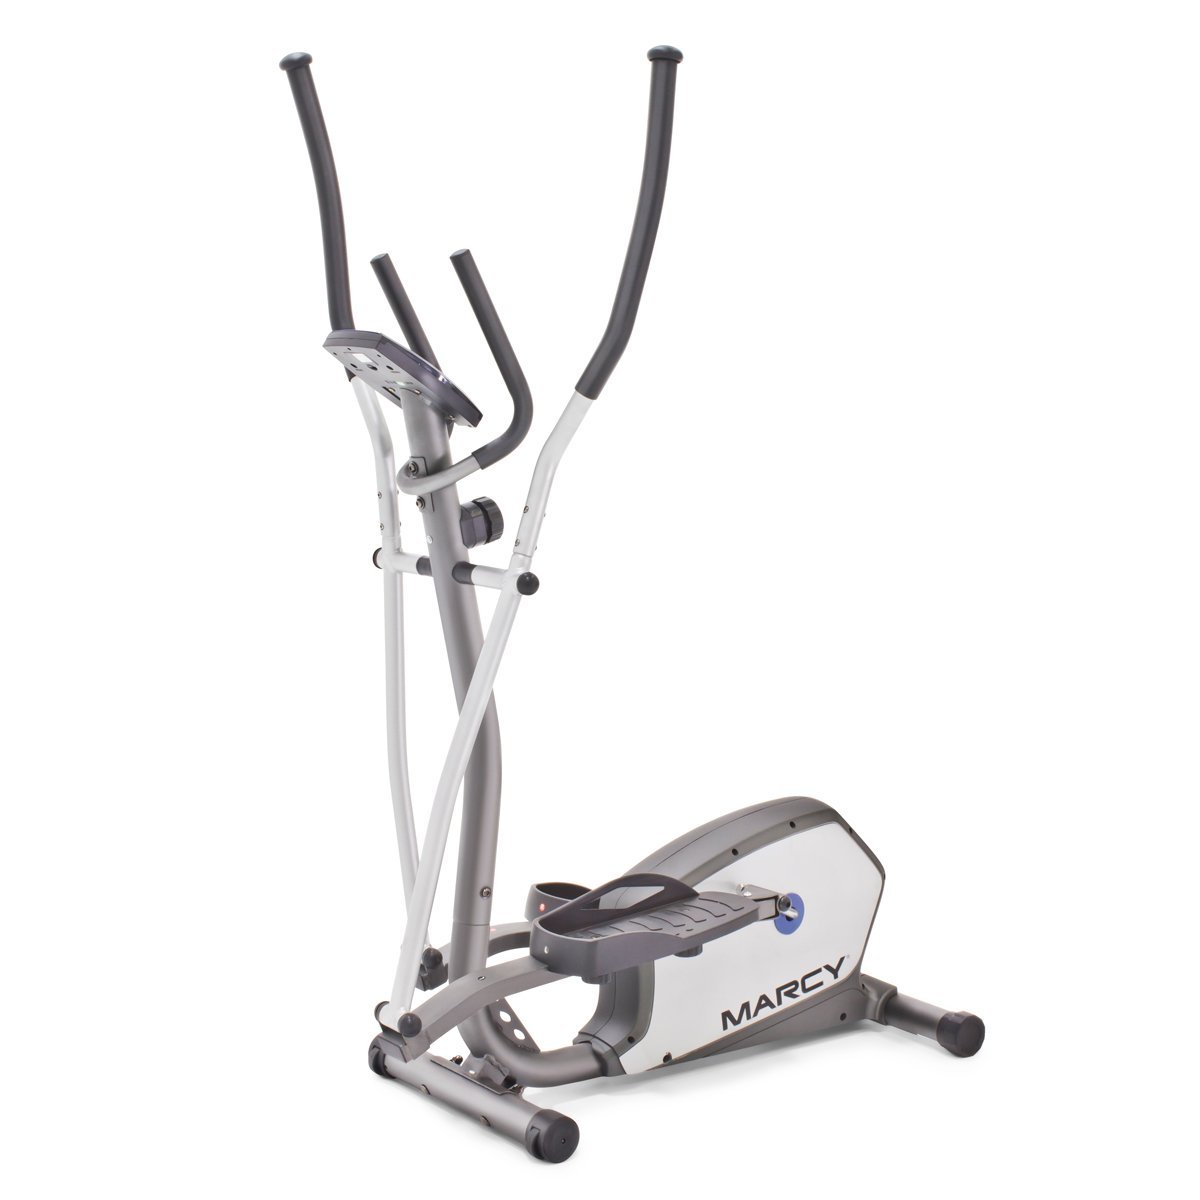 Marcy NS-1201E Magnetic Resistance Elliptical Trainer, Black, Vinyl